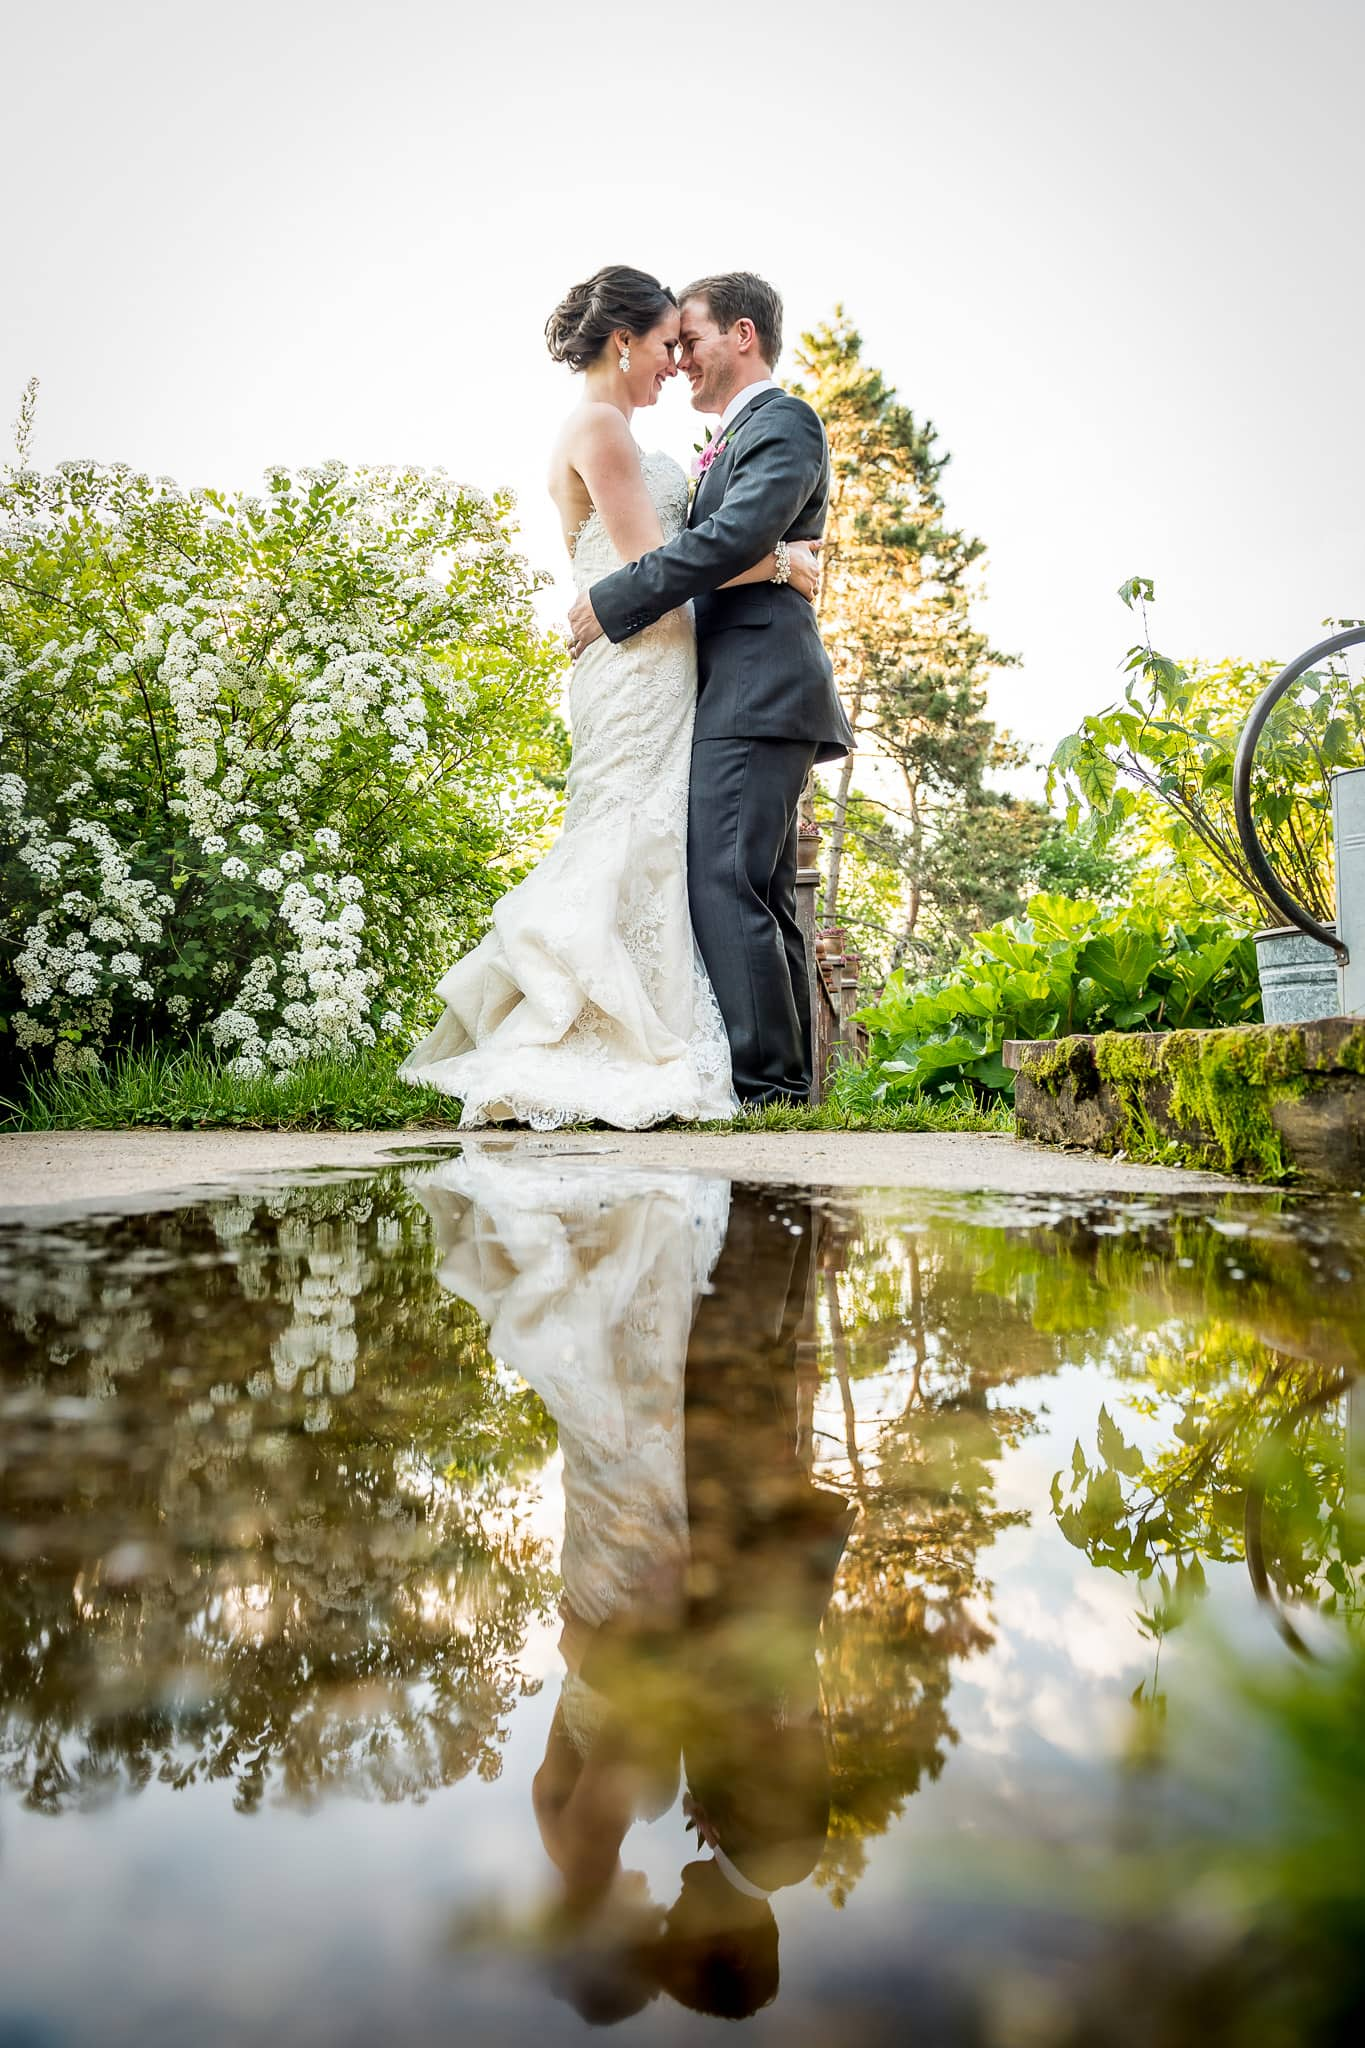 Creative Bride and Groom symmetrical reflection image in rain water puddle at Camrose Hill Flower Farm